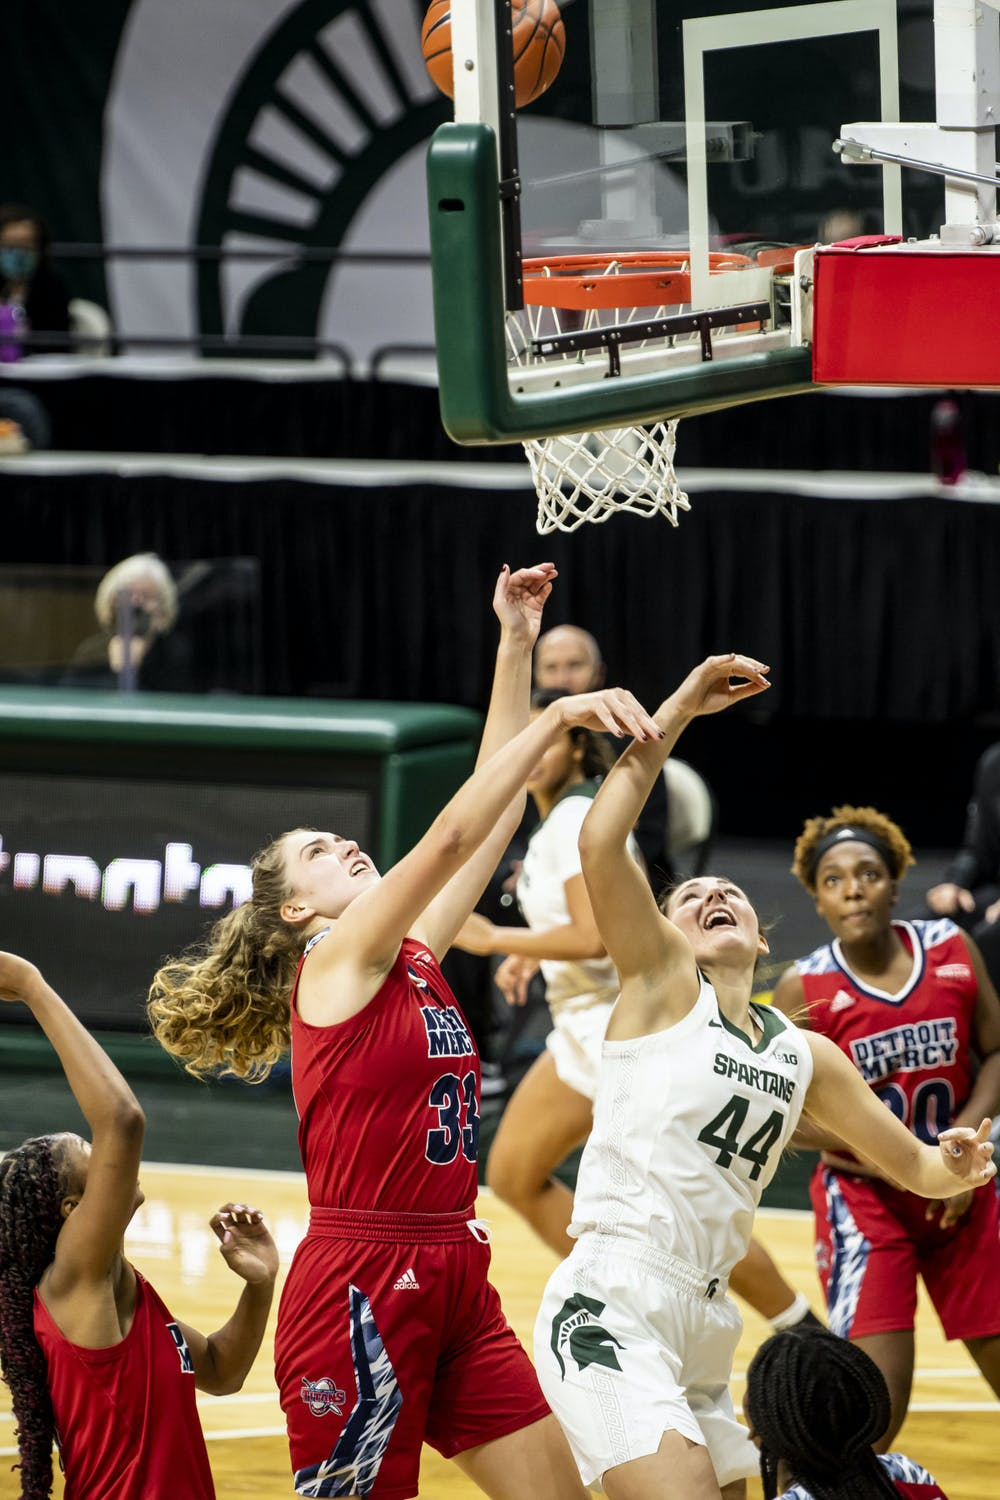 <p>MSU women&#x27;s basketball goes up against Detroit Mercy in their second game of the season Dec. 2, 2020.</p>